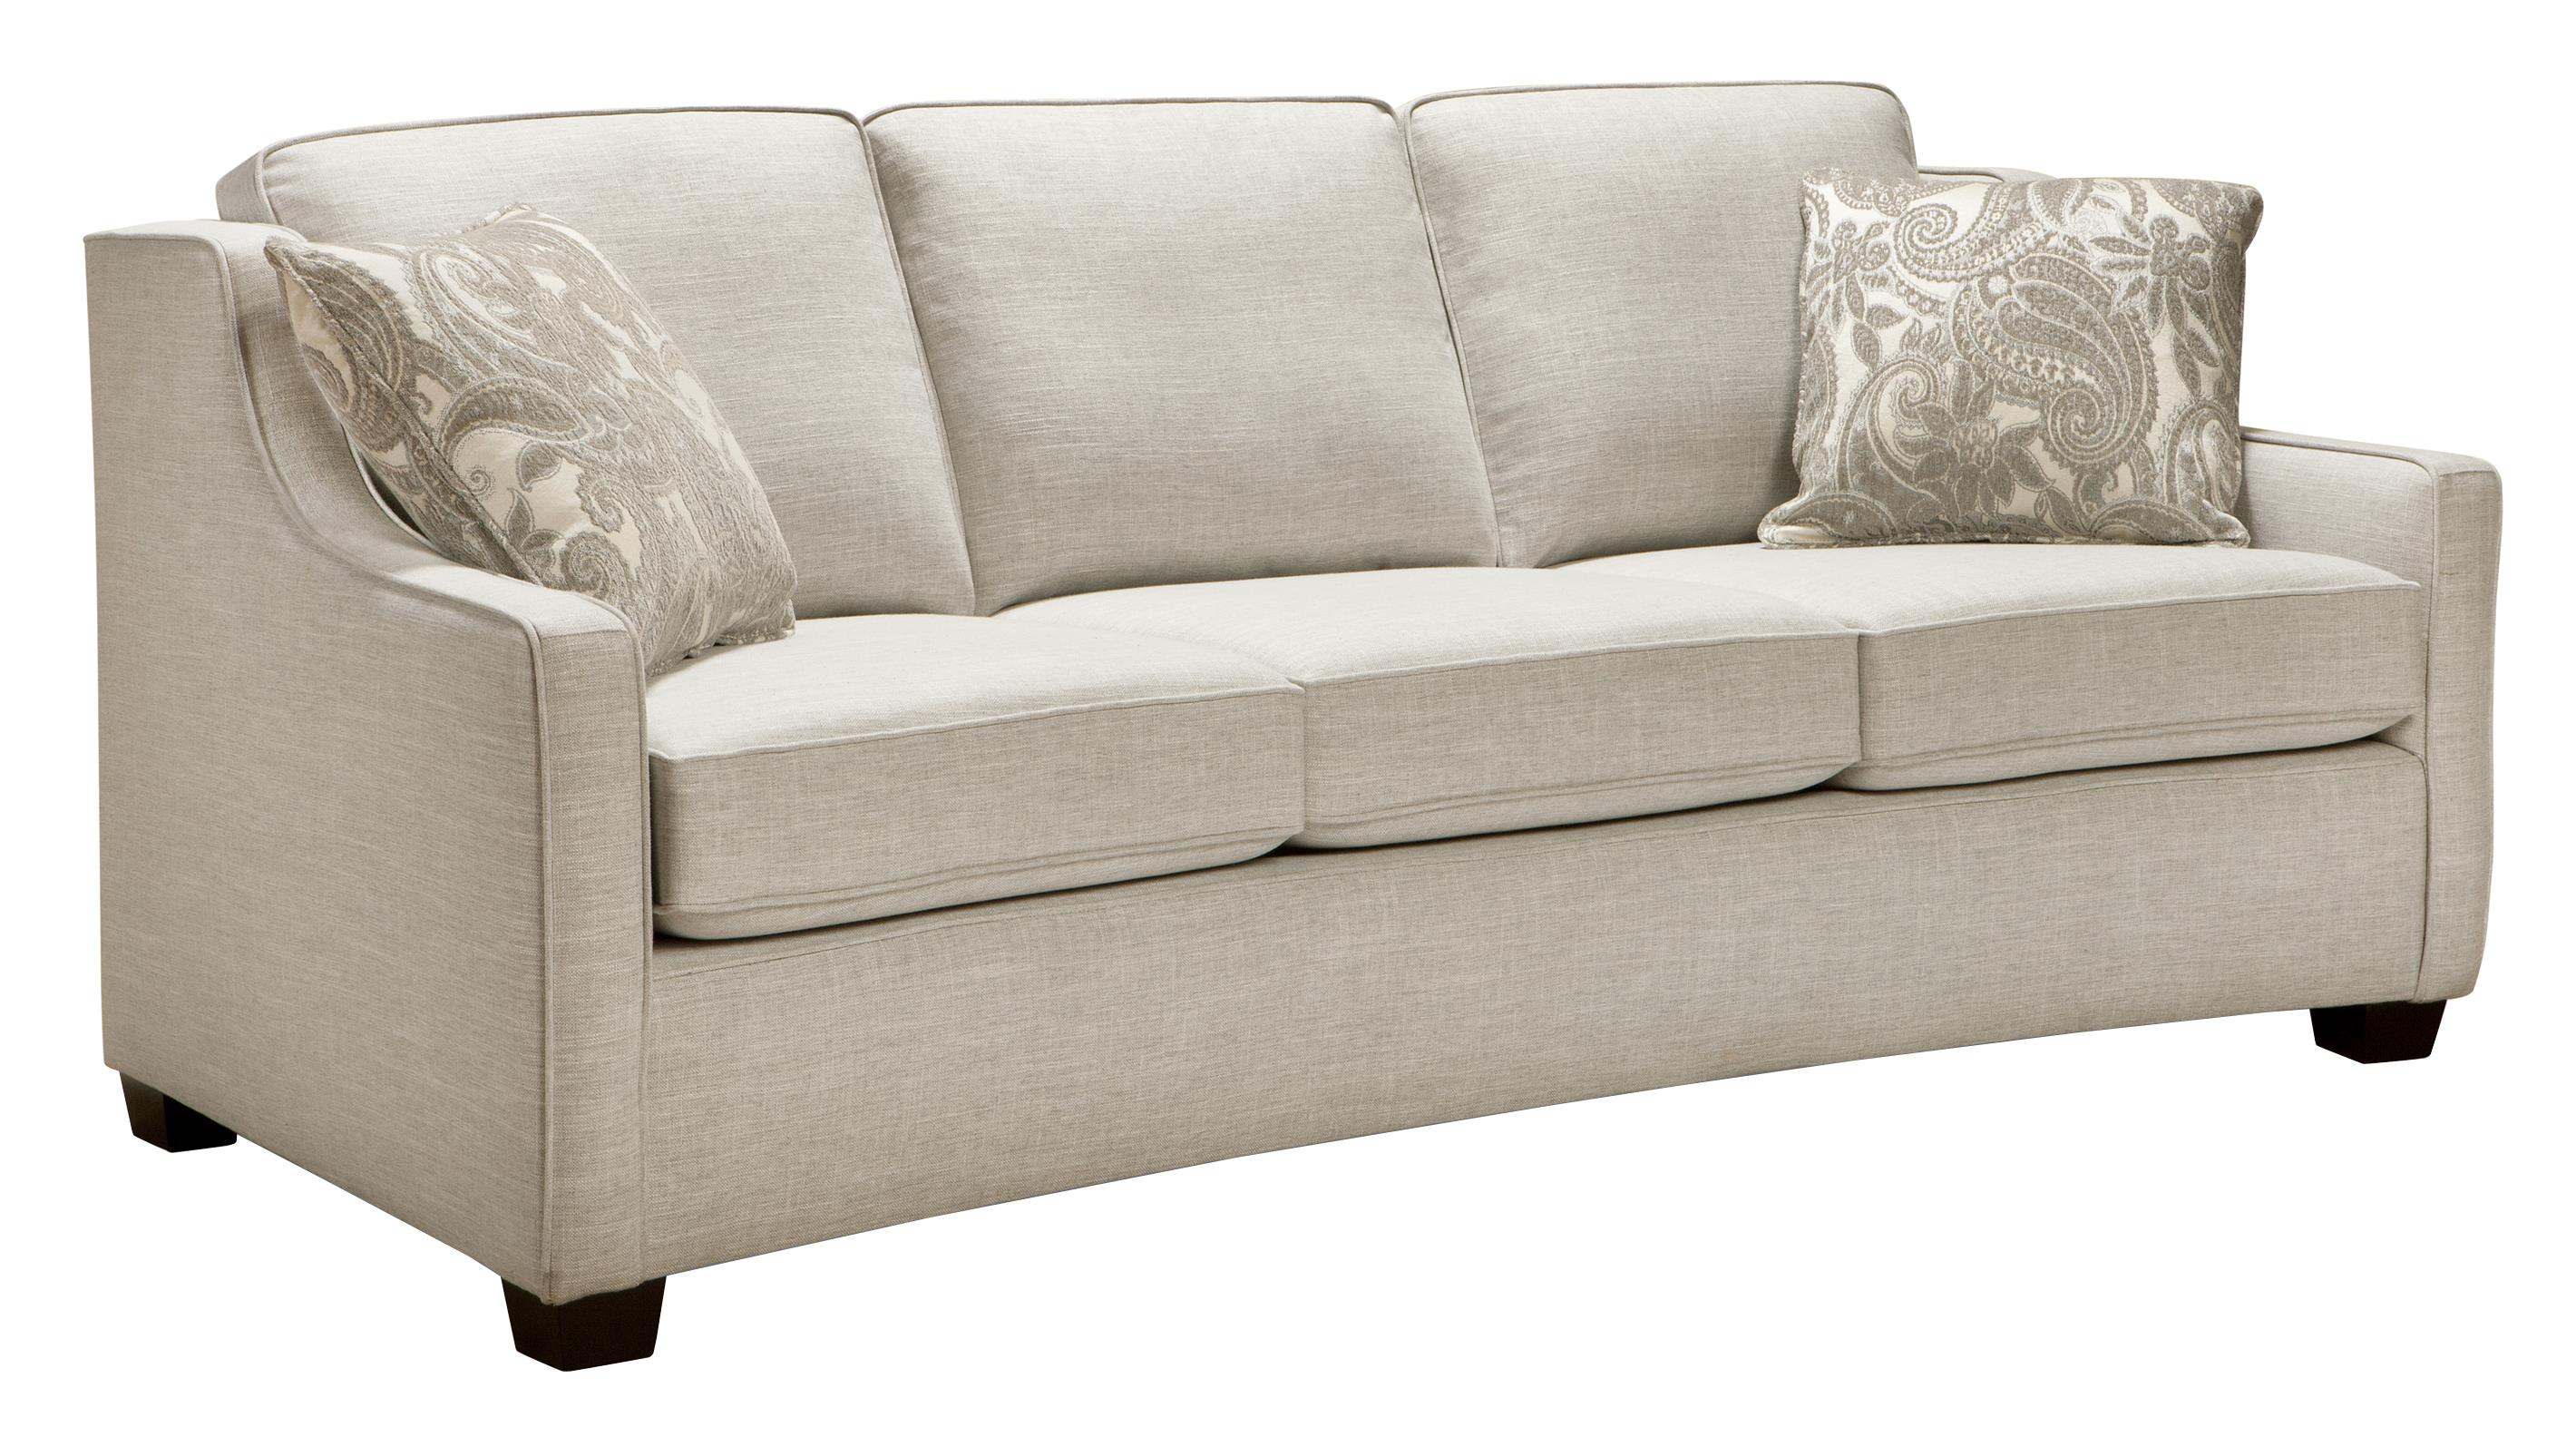 Condo size sofa grab the opportunity this condo size for Sectional sofa condo size